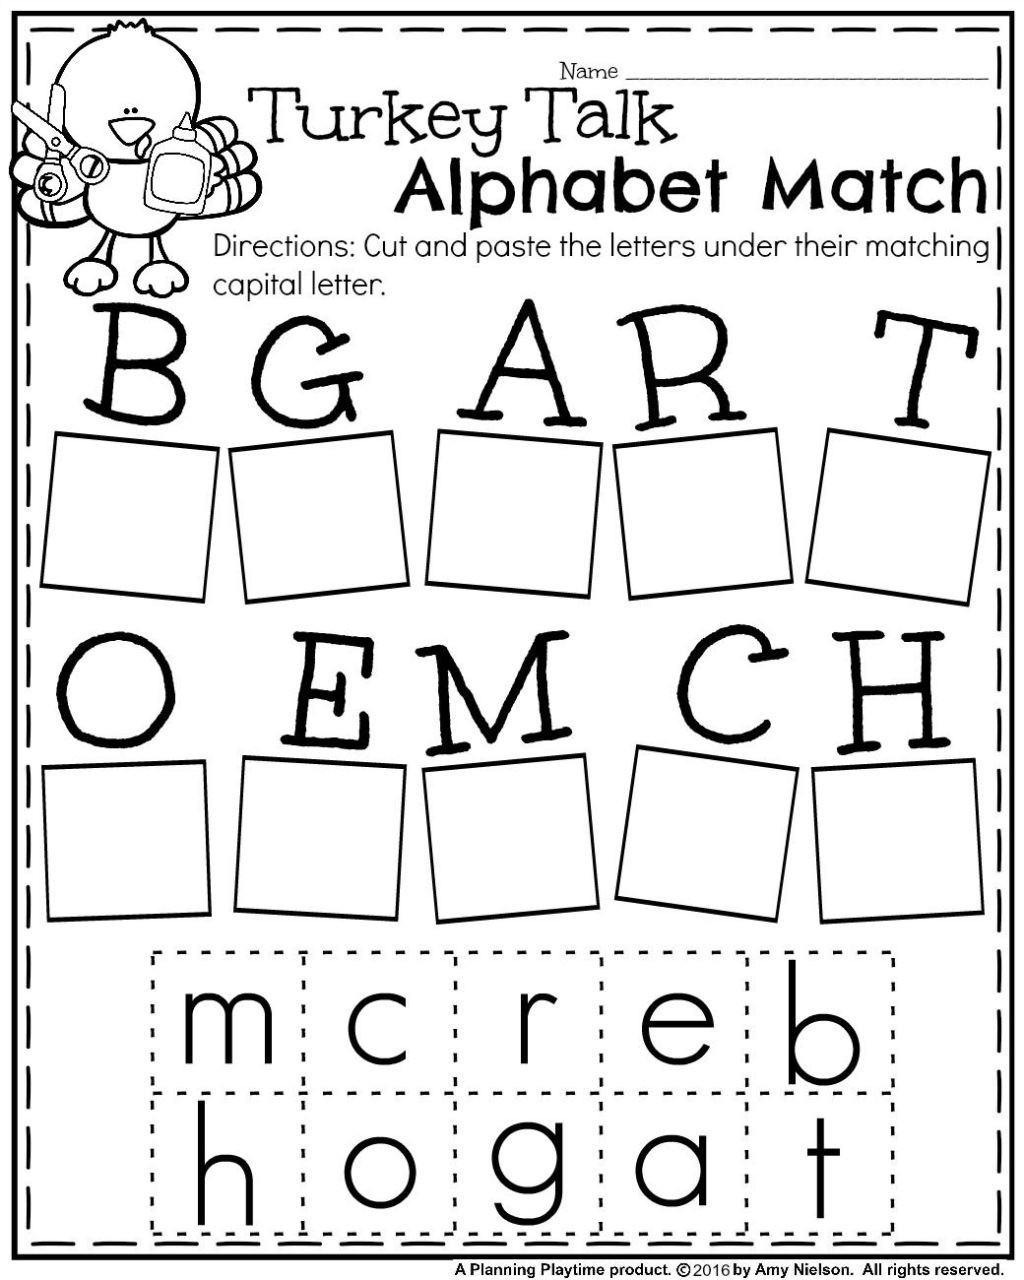 Free Printable Story Sequencing Worksheets Worksheet Good and Choices Kindergarten Sheet Music for